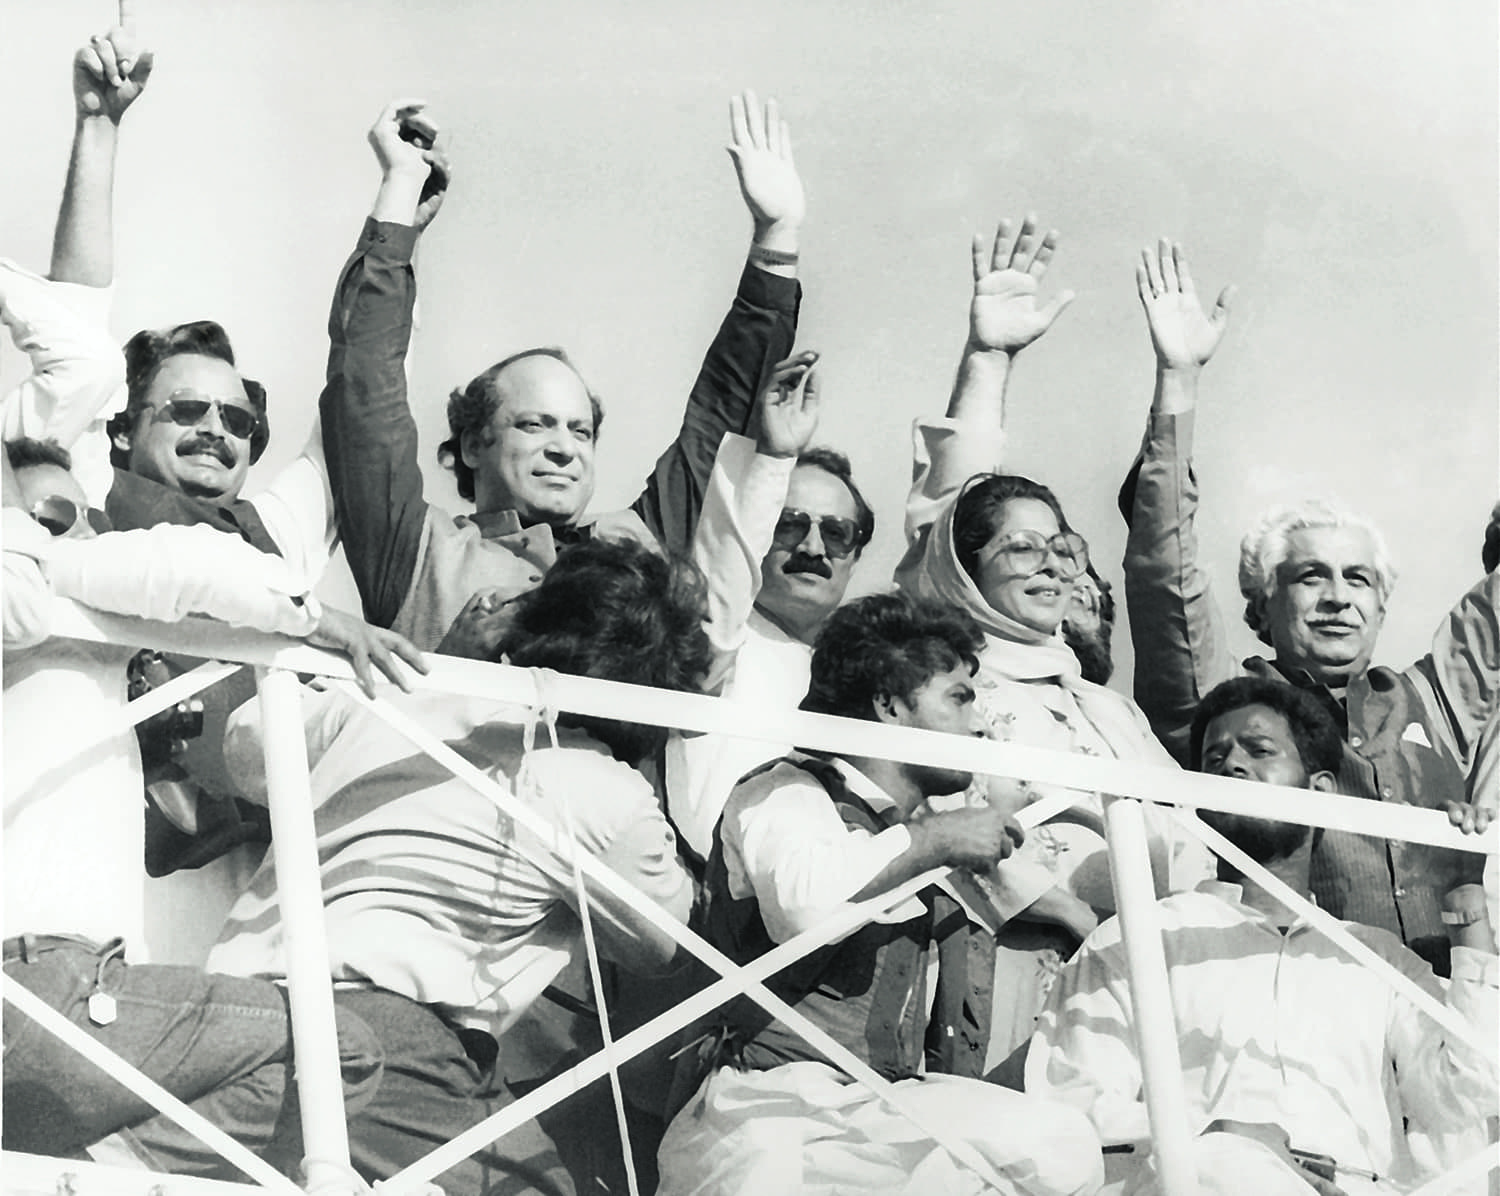 Contrary to what the photograph might depict, Nawaz Sharif has hardly ever been a silent, contemplative spectator on the national political scene. SHORTLY before being elected prime minister in November 1990, Nawaz entered into coalition, among others, with the Mohajir Qaumi Movement in urban Sindh. He is seen here at a rally in Karachi with MQM leader Altaf Hussain (left). Ghulam Mustafa Jatoi, who was heading the Combined Opposition Party (COP) in the National Assembly and was soon to become the caretaker prime minister, is on the extreme right next to Syeda Abida Hussain. | Photo: Hasan Bozai.